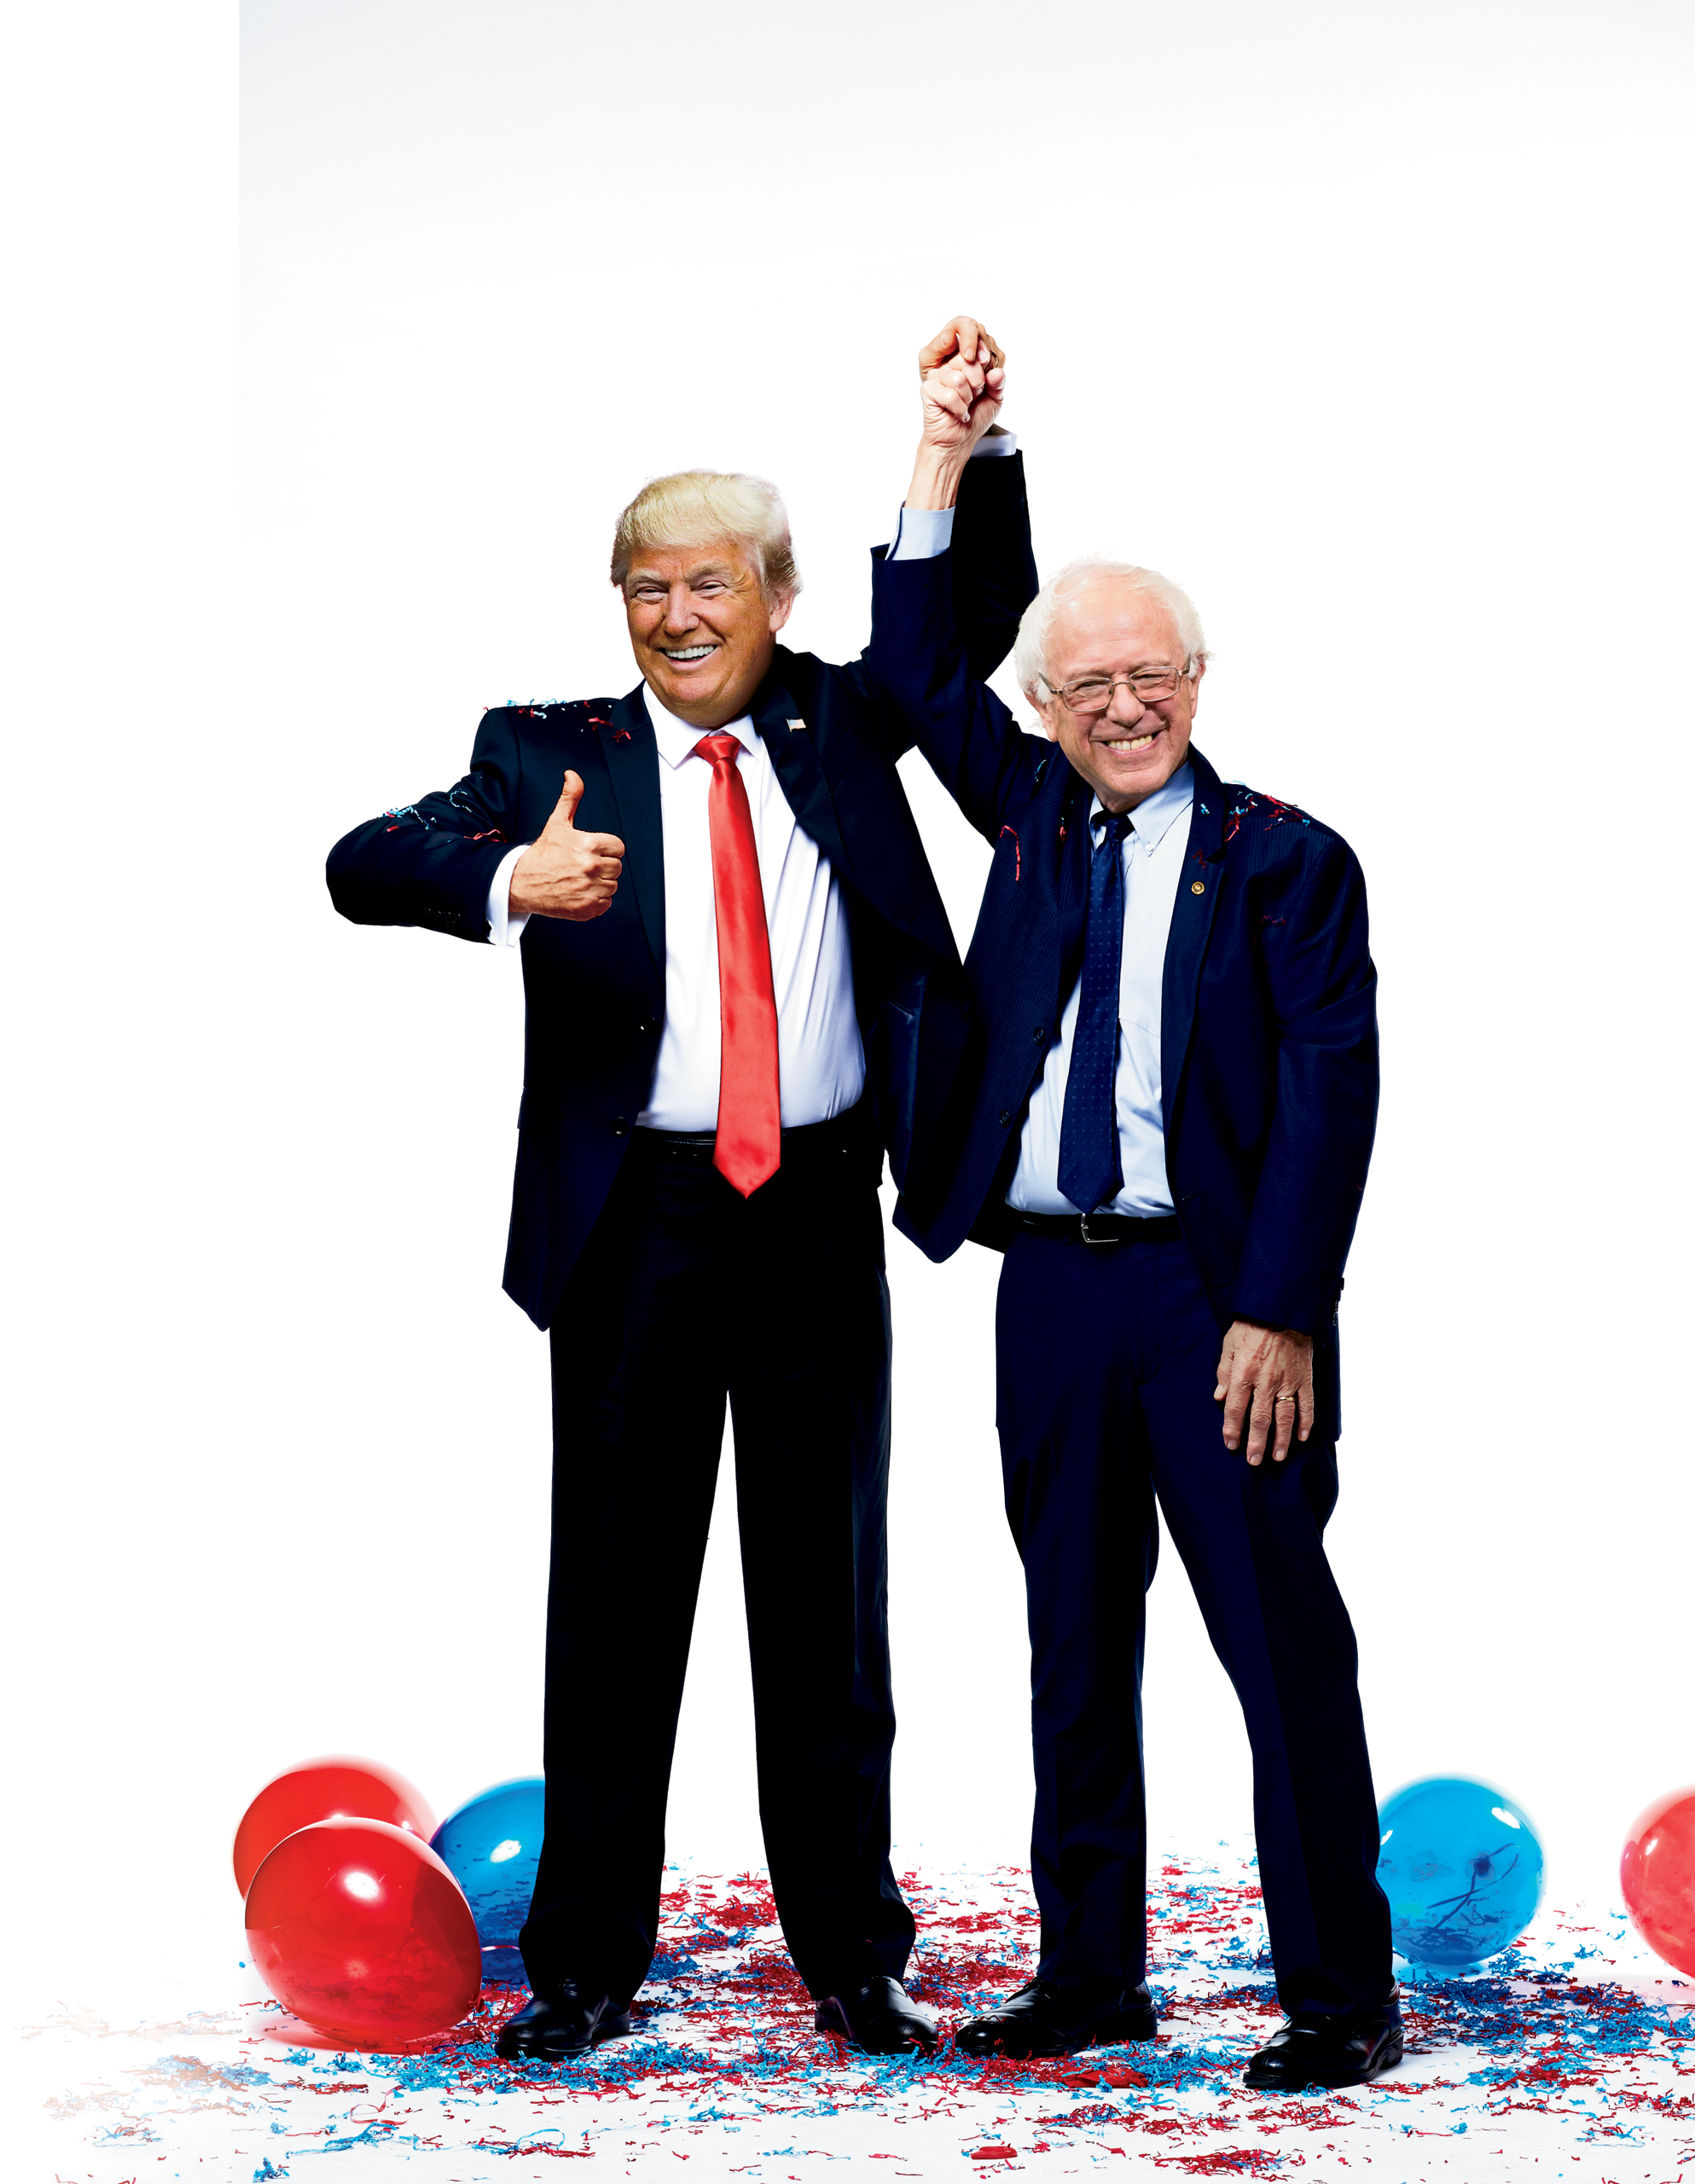 The Trump and Sanders show: Why two outsiders are winning